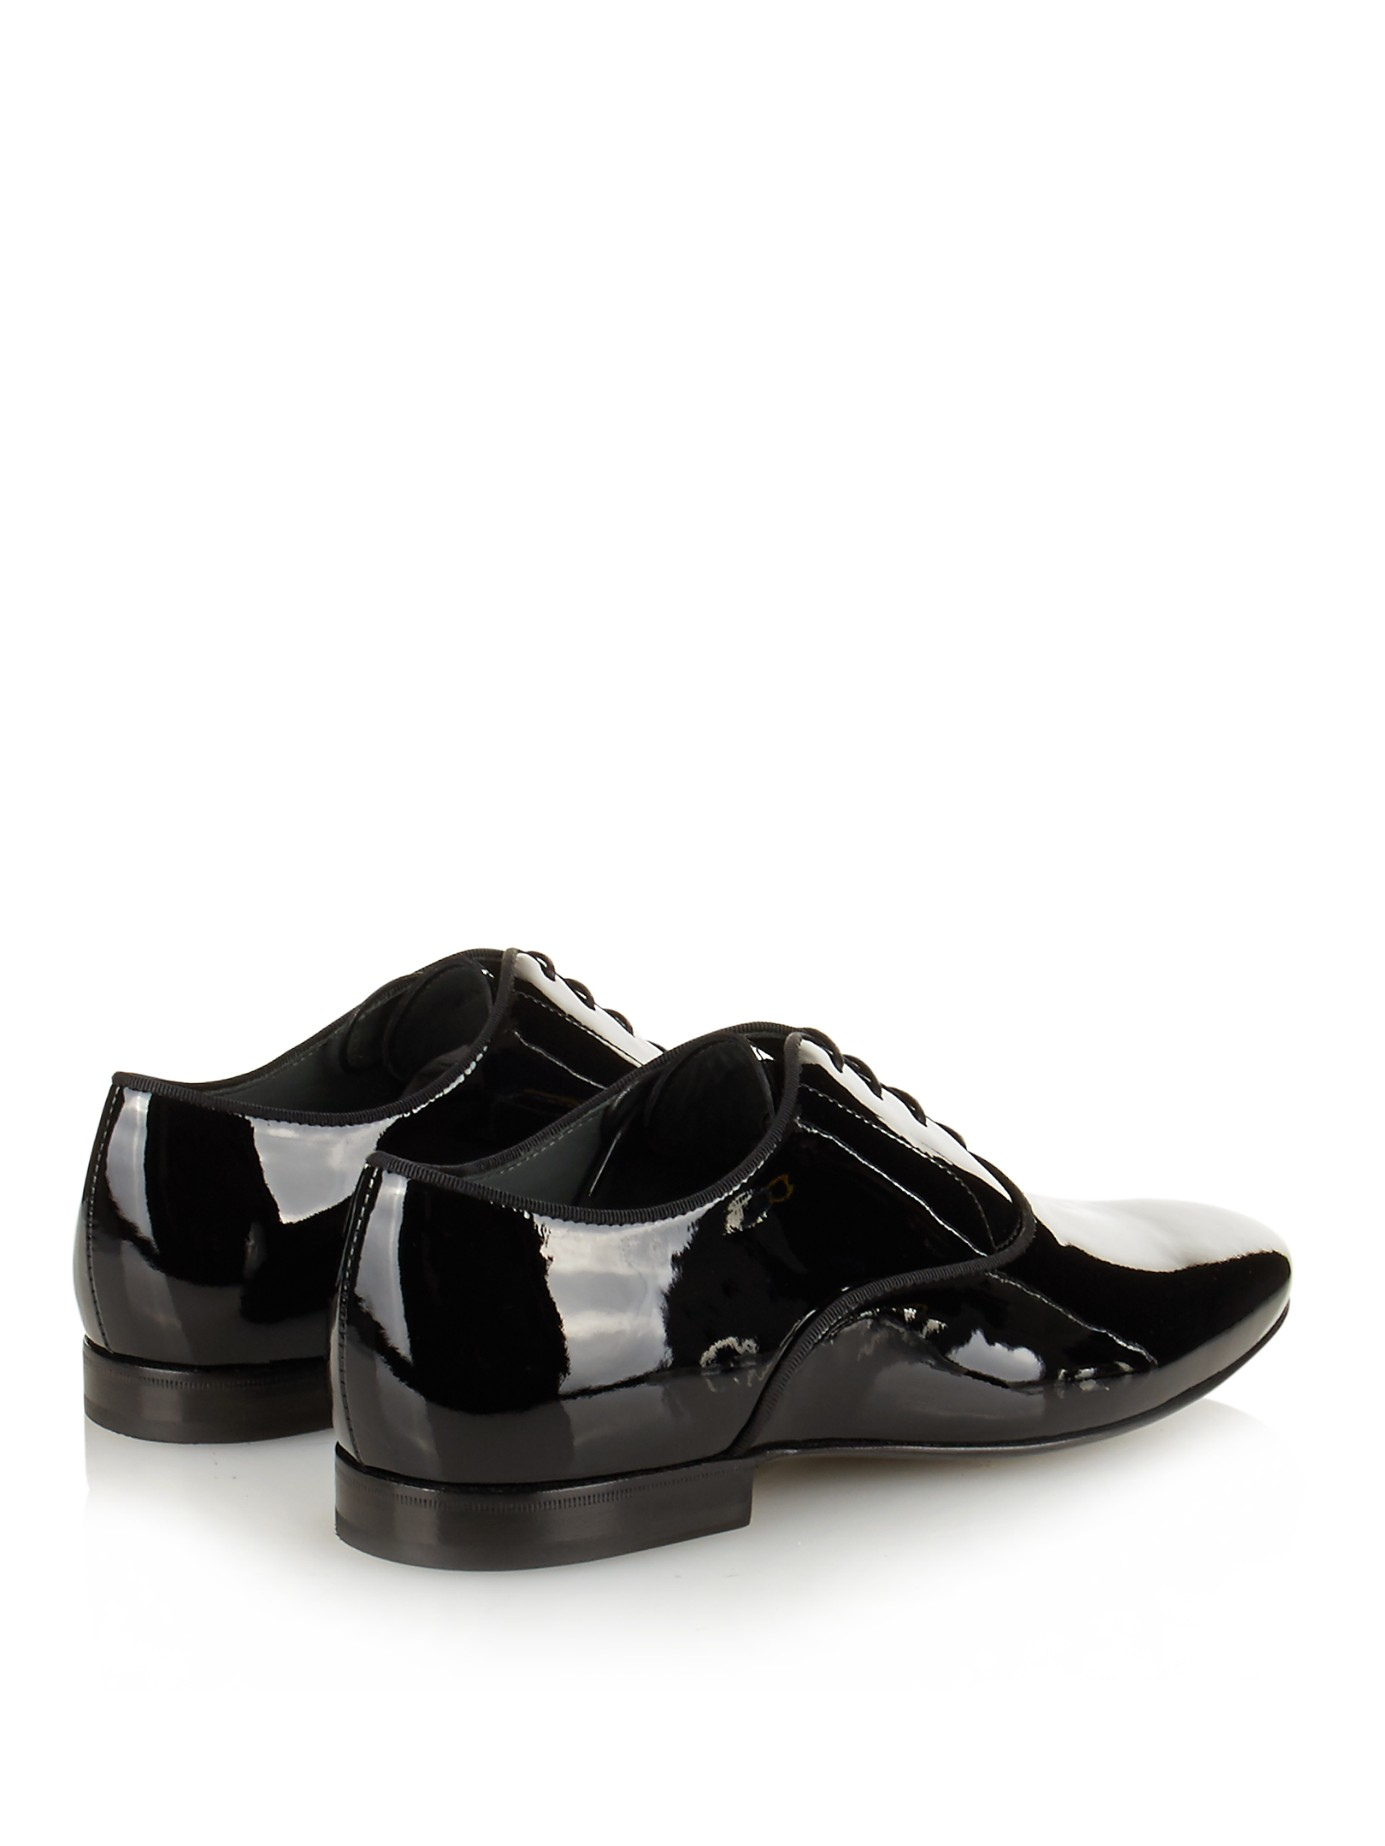 Lanvin Patent-leather Oxford Shoes In Black For Men | Lyst